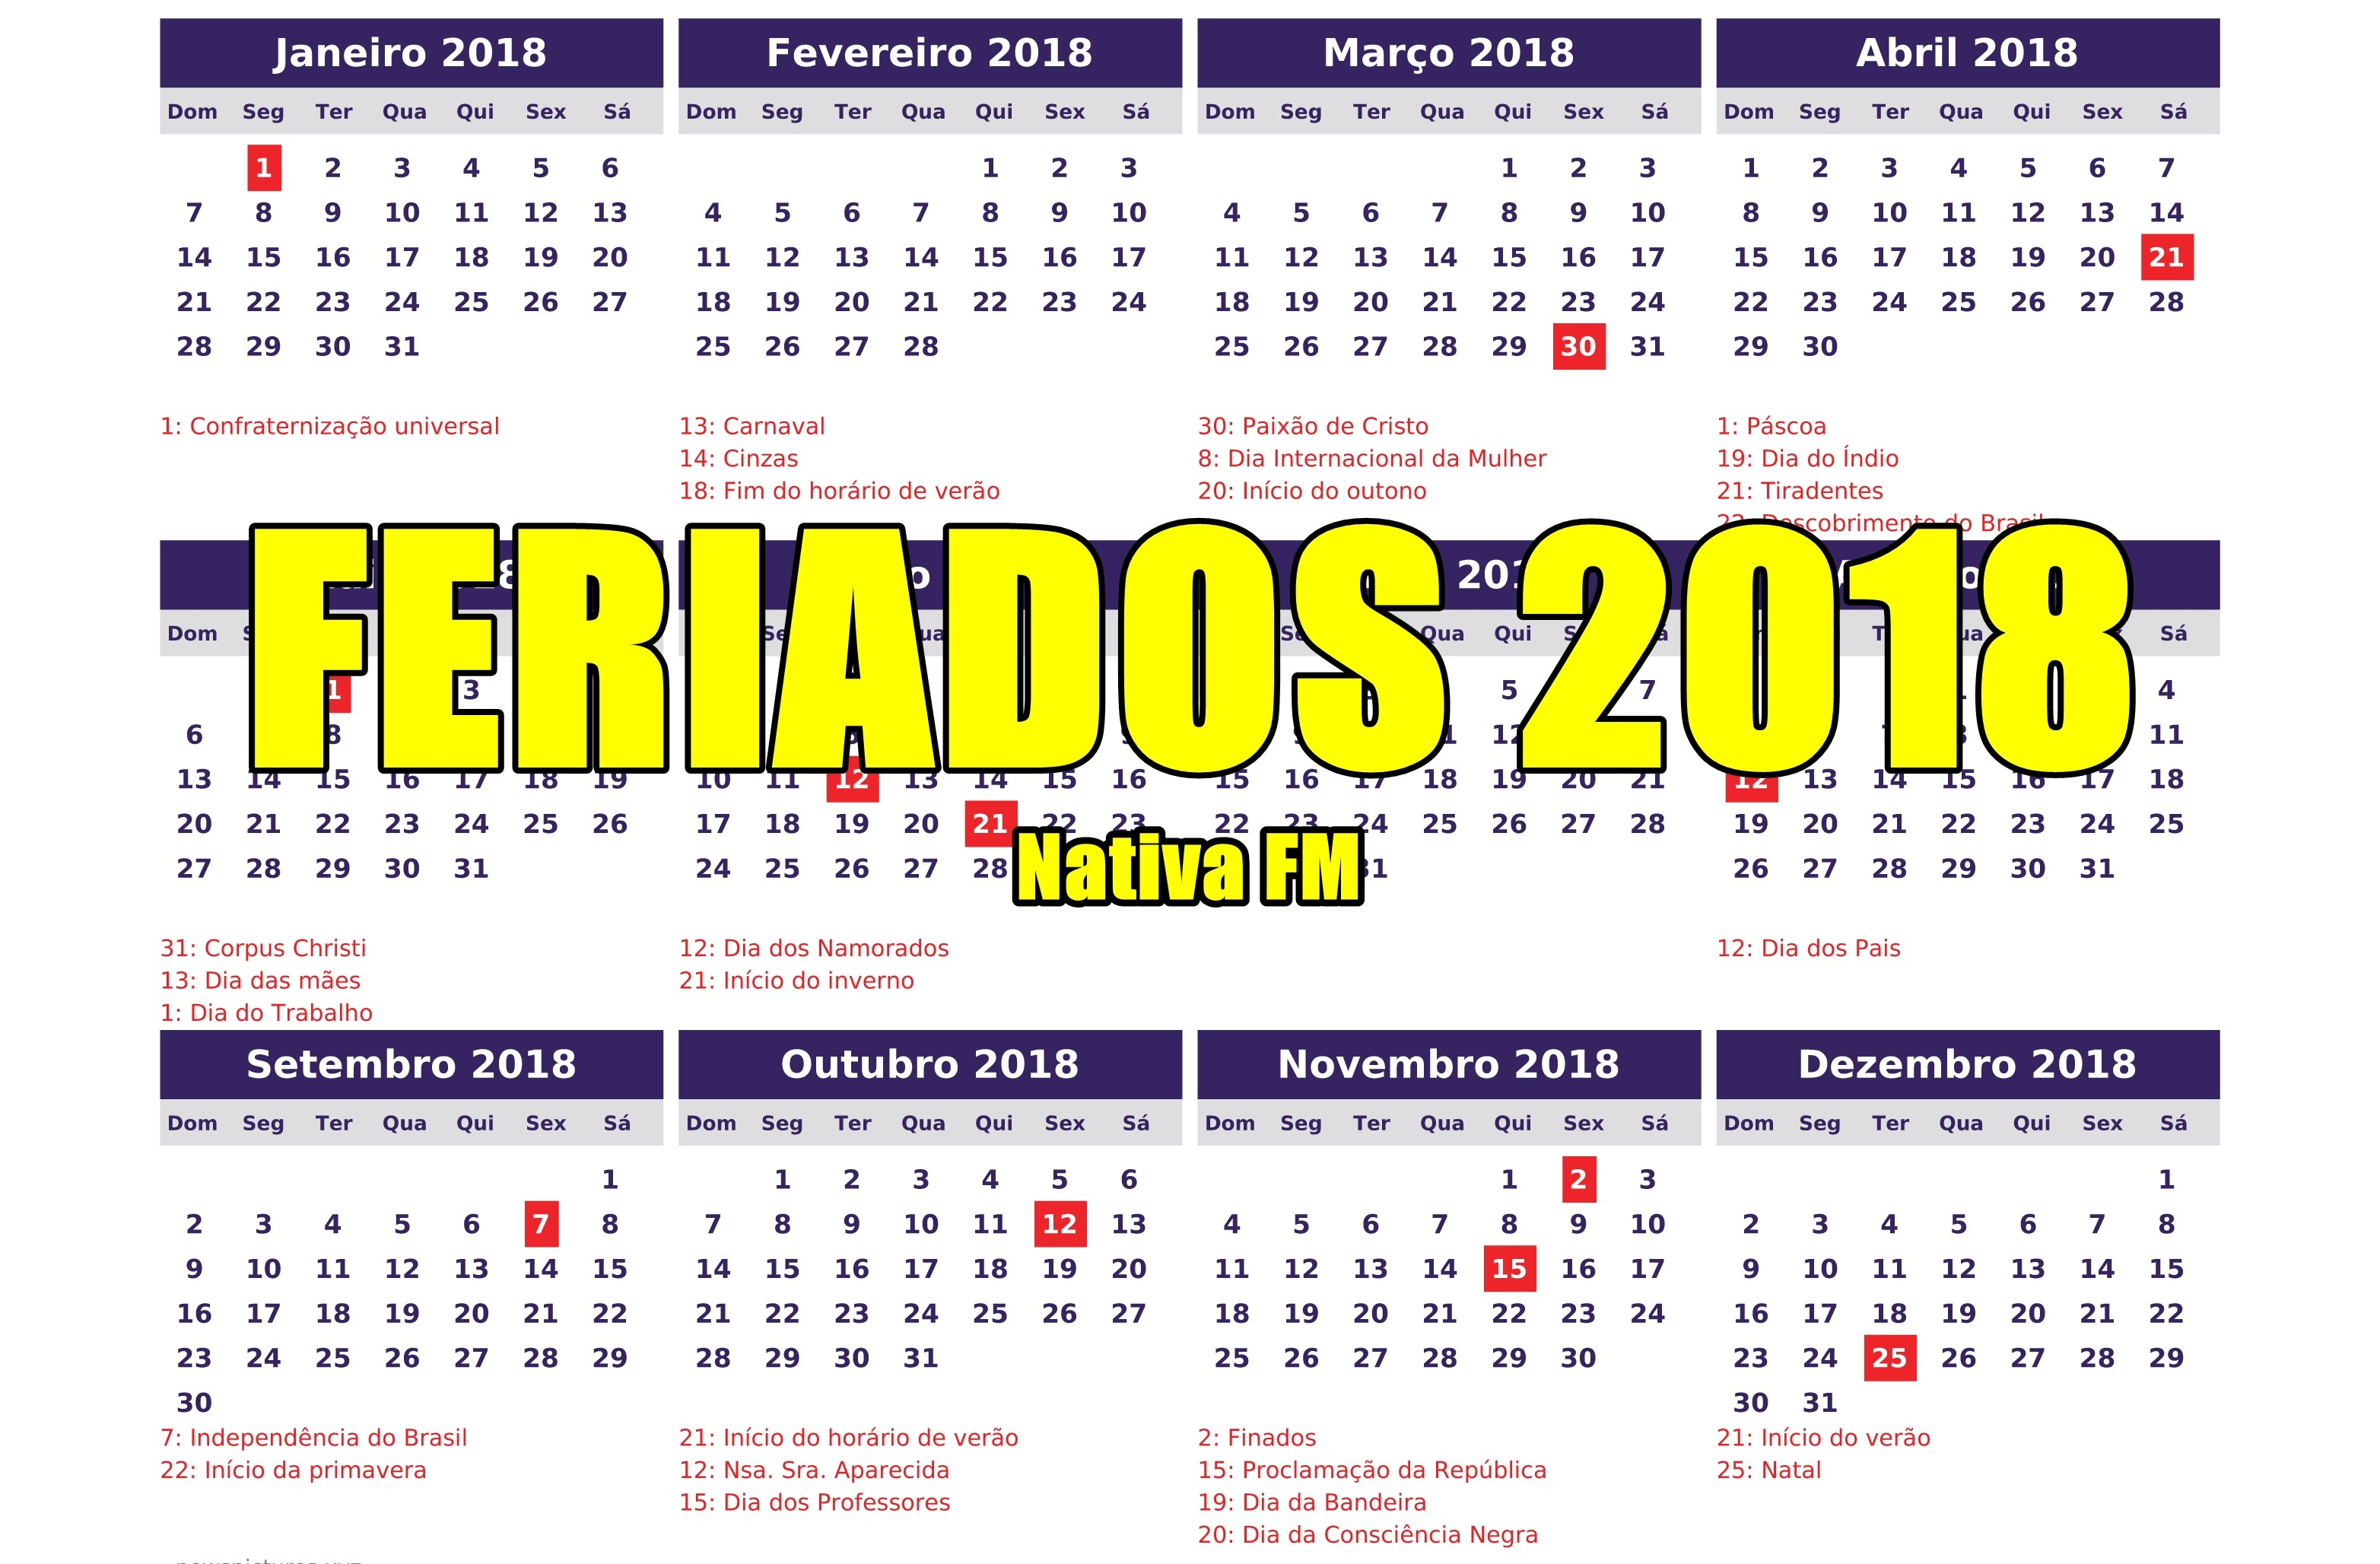 Calendario 2020 Feriados Argentina Carnaval Más Reciente All Categories Servicio De Citas En andalucia Of Calendario 2020 Feriados Argentina Carnaval Más Recientes Edicion Impresa 20 01 16 [pdf Document]